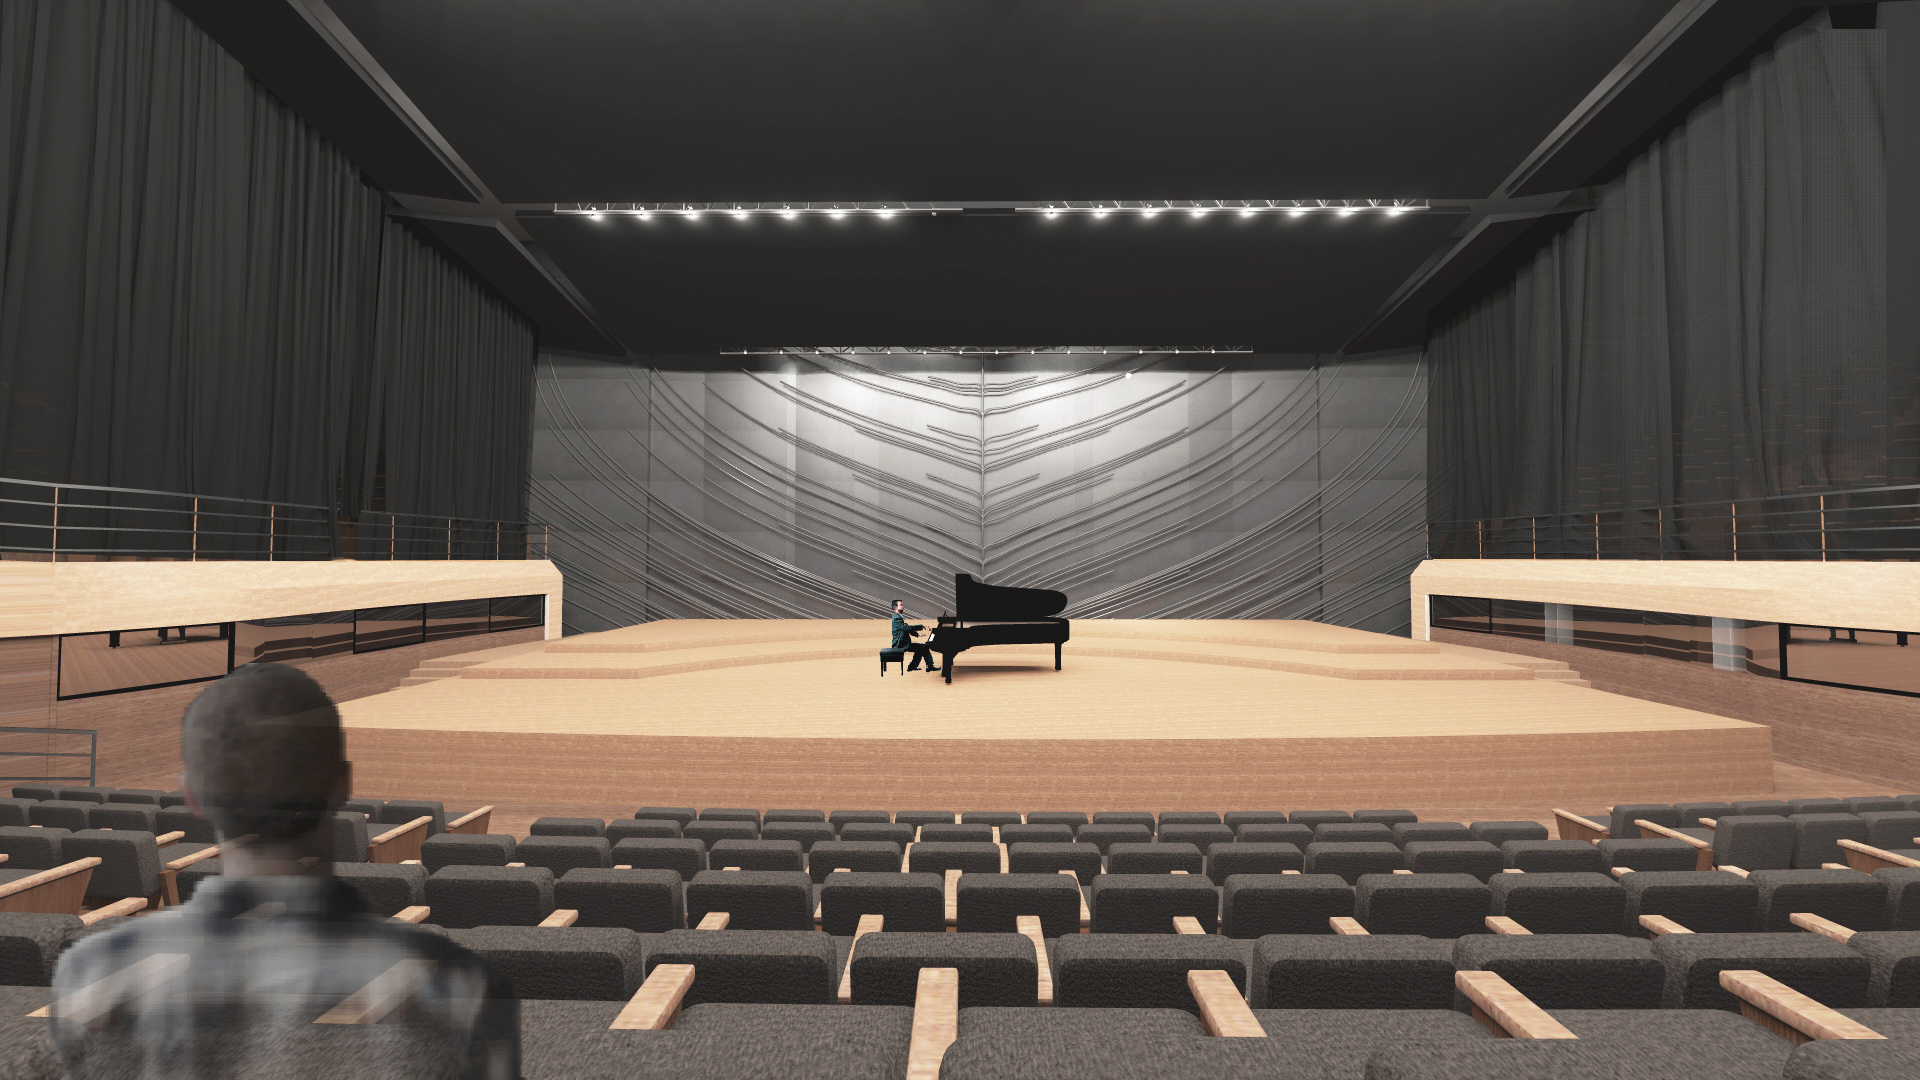 Chopin Music Center, visualisation of the concert hall, solo pianist